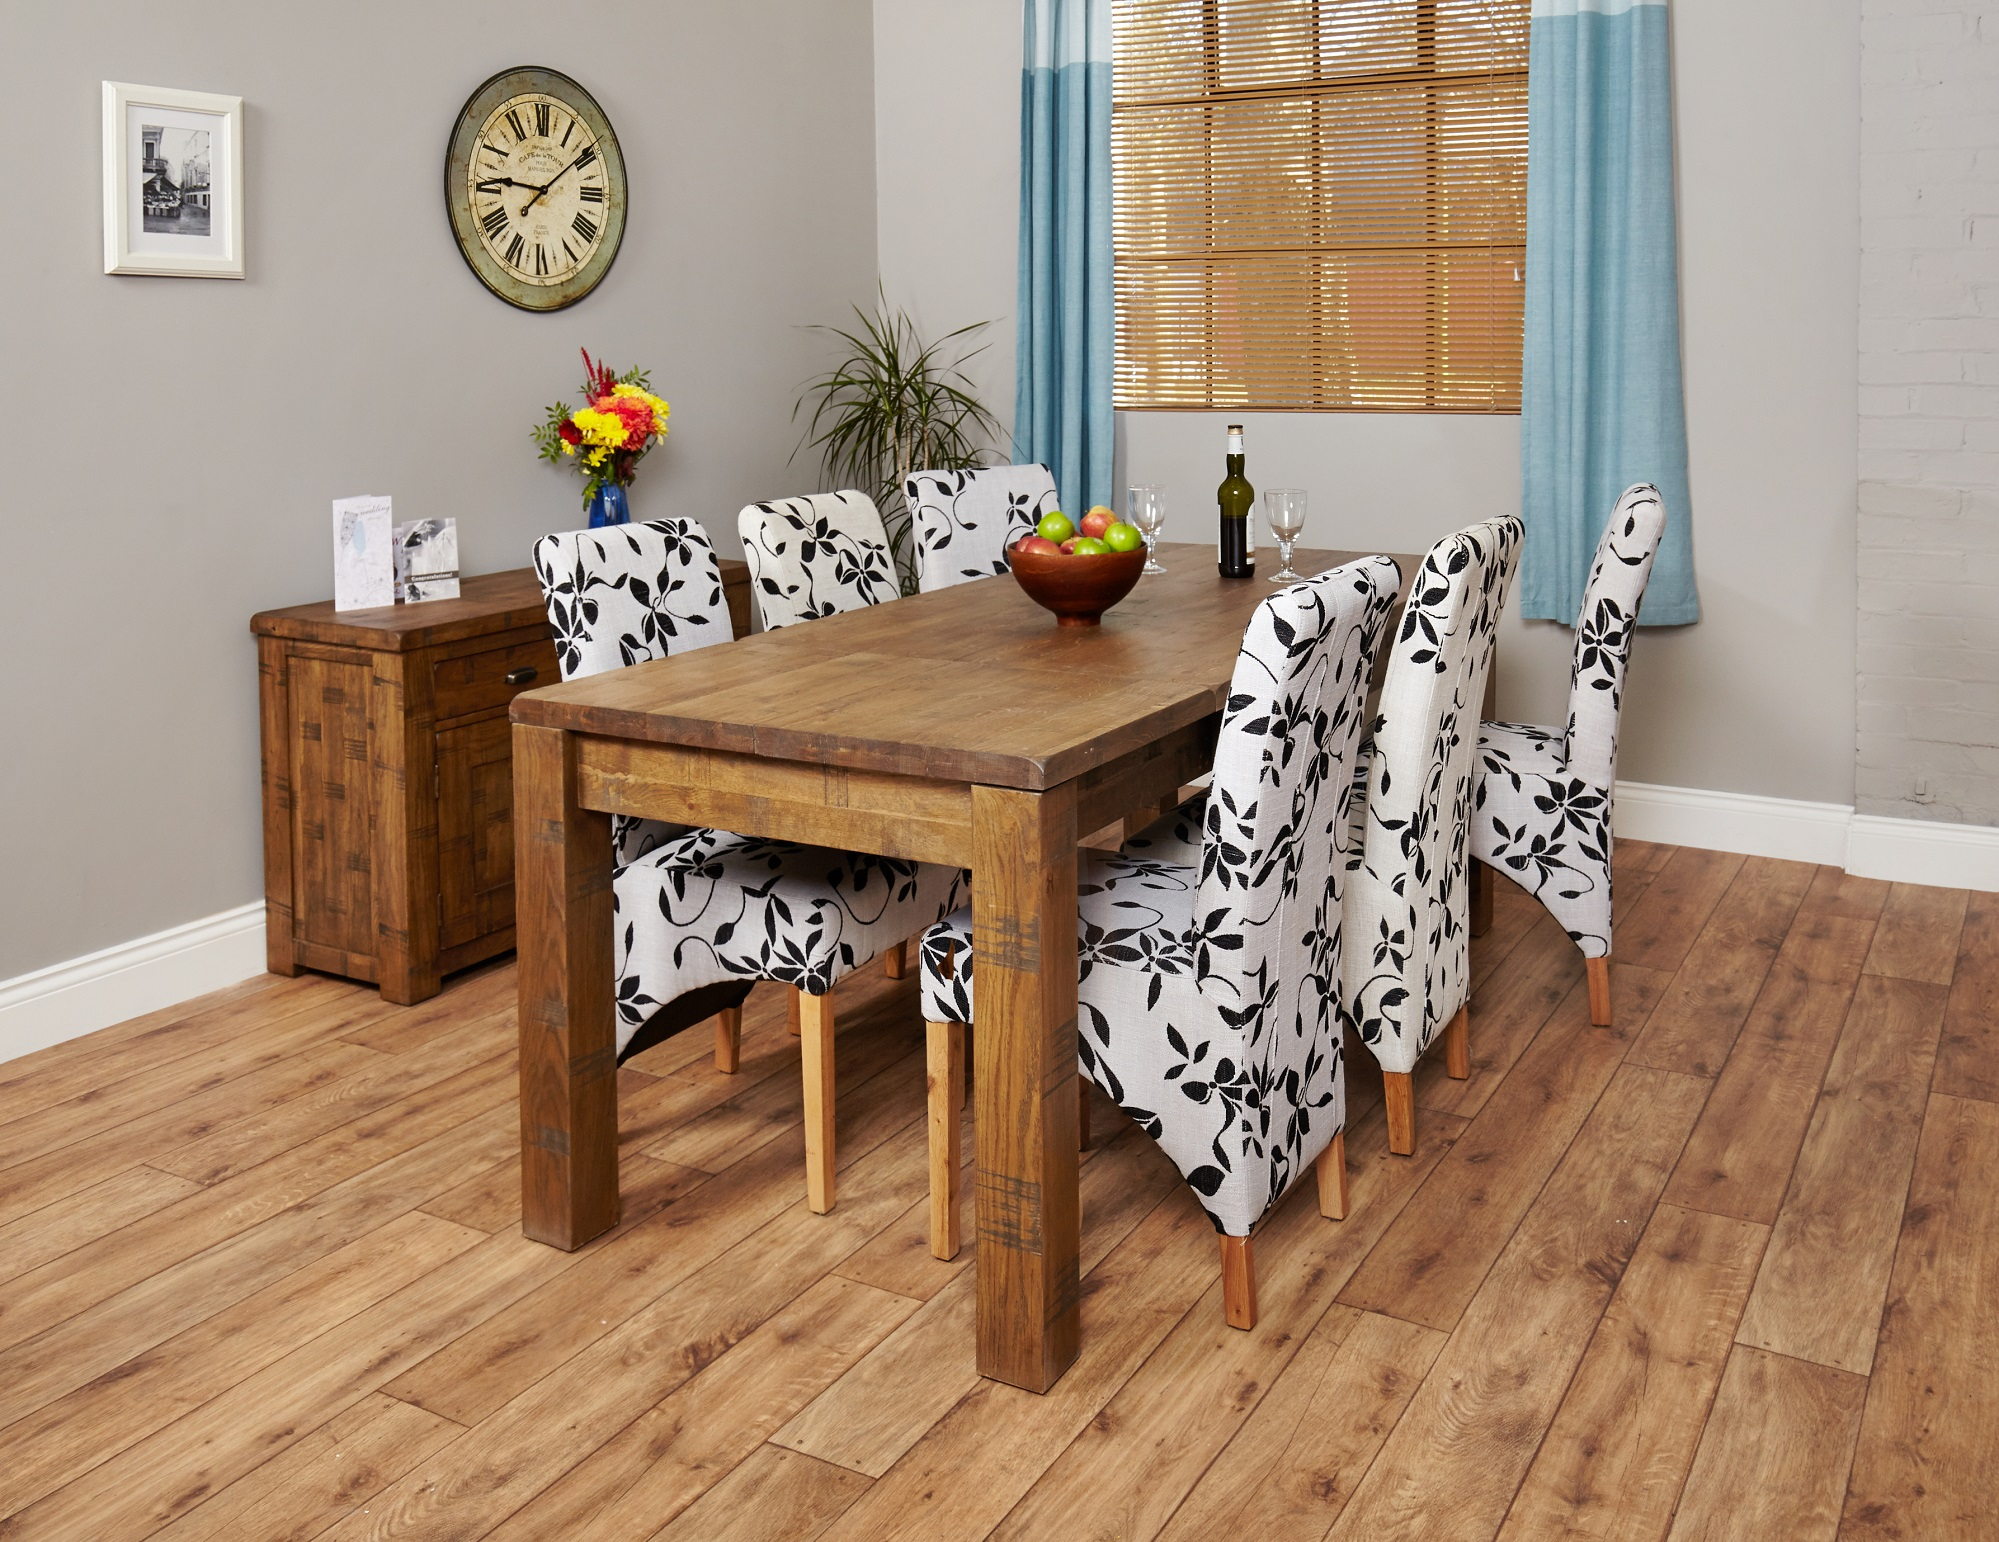 https://www.firstfurniture.co.uk/pub/media/catalog/product/3/5/35_1_11.jpg